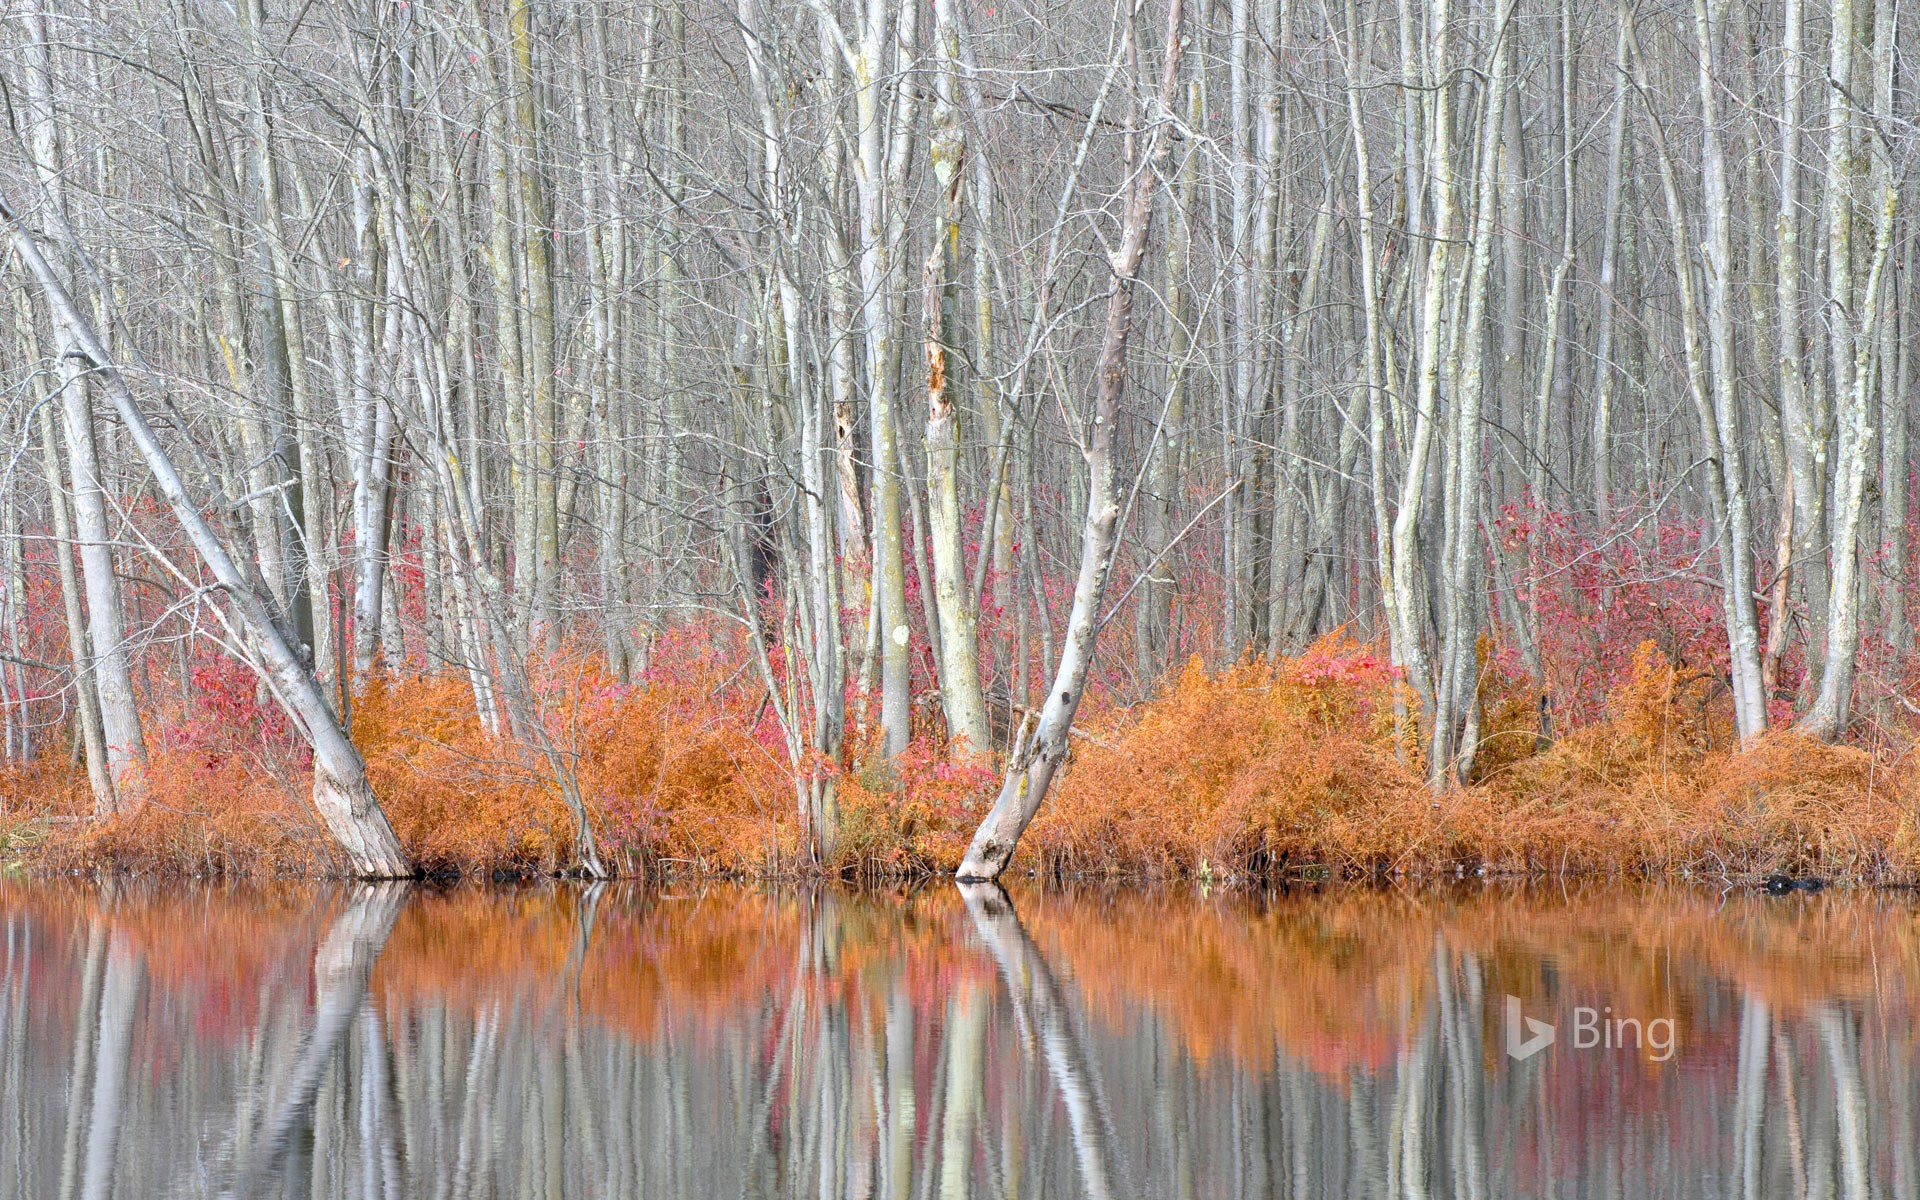 Bare trees and autumn ferns in Beaver Lake Nature Center, New York